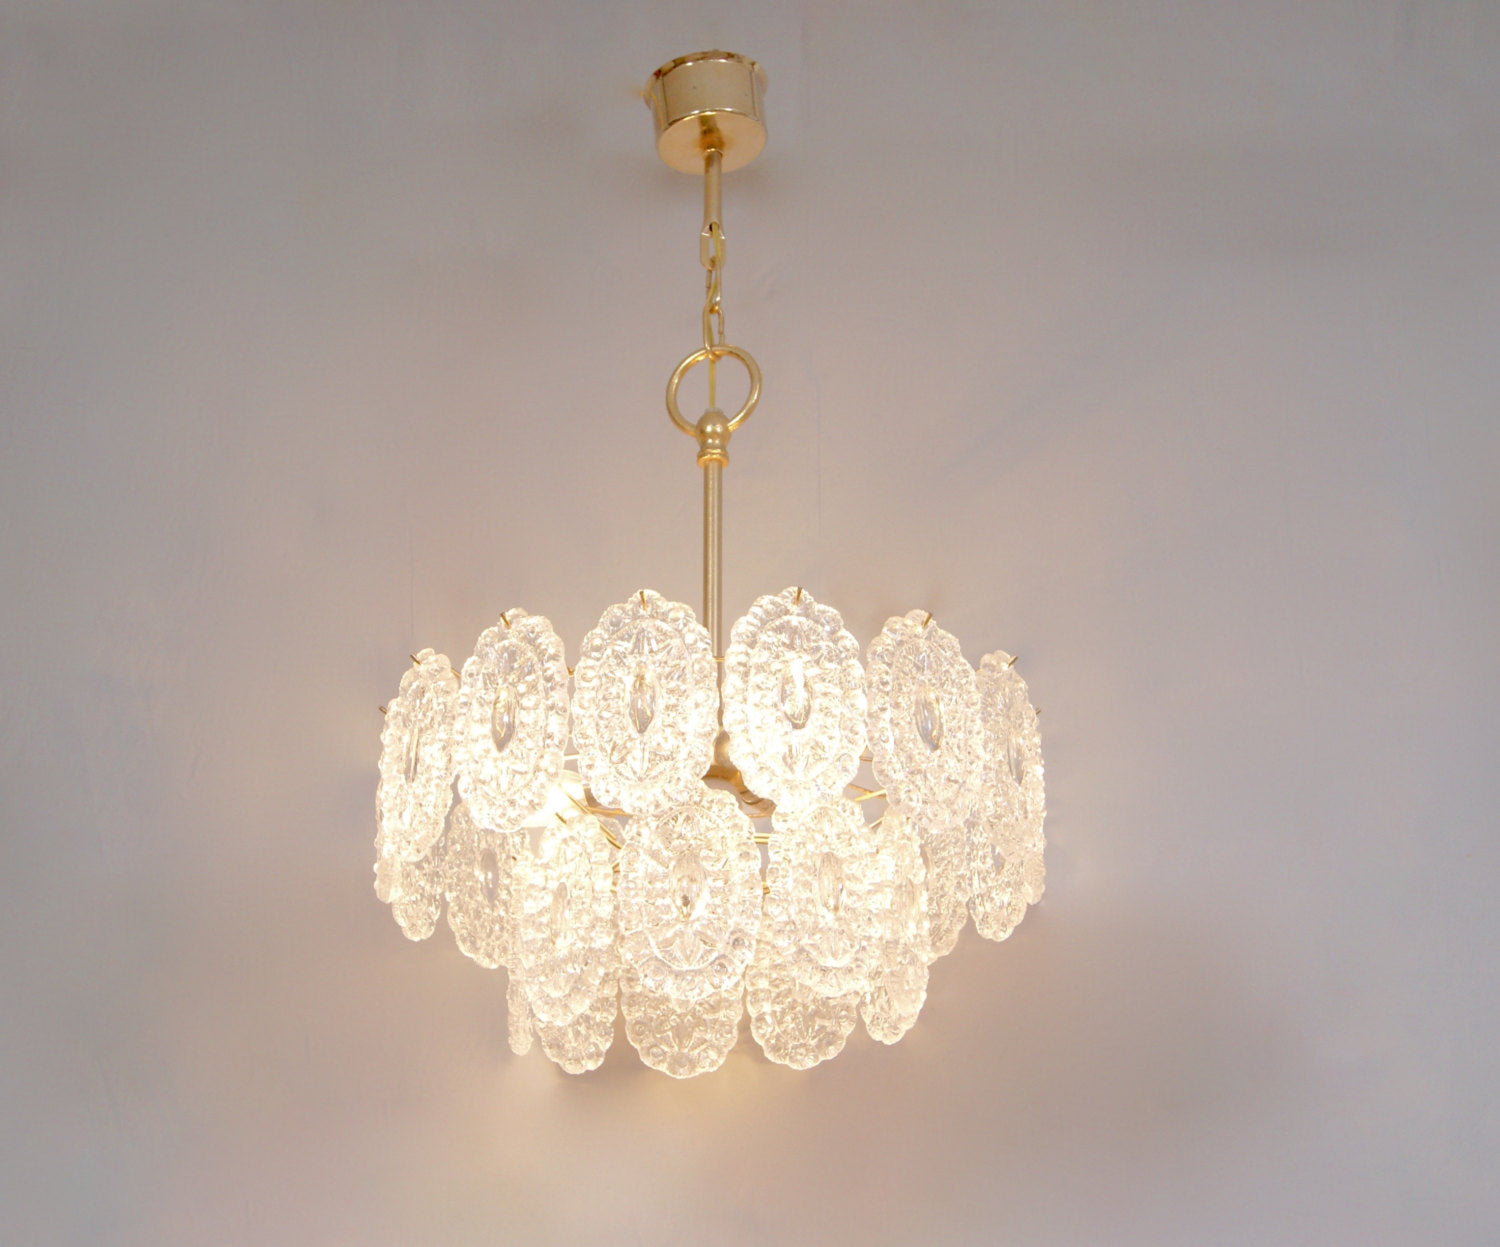 Vintage 1960 Murano Art Glass Crystal Chandelier Ceiling Hanging Lamp Light